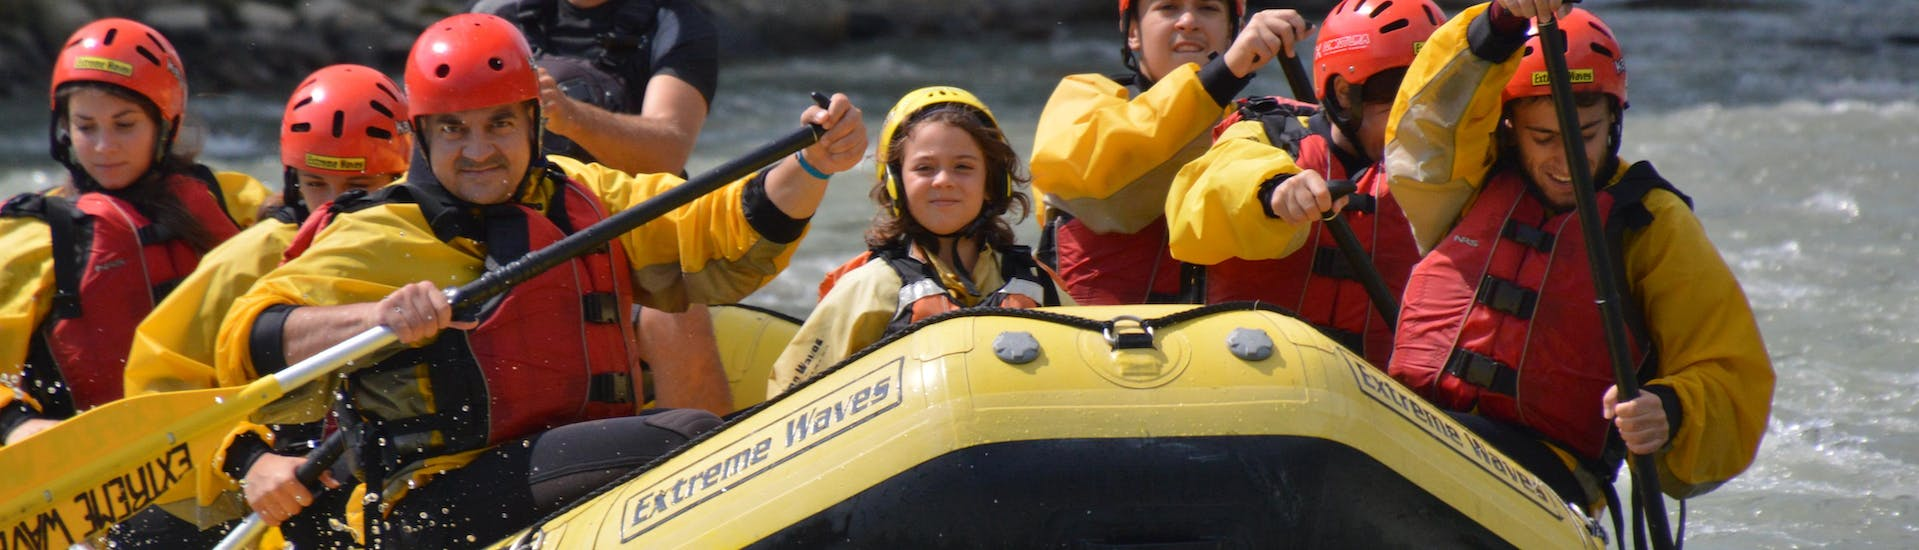 rafting-on-the-noce-for-families-classic-extreme-waves